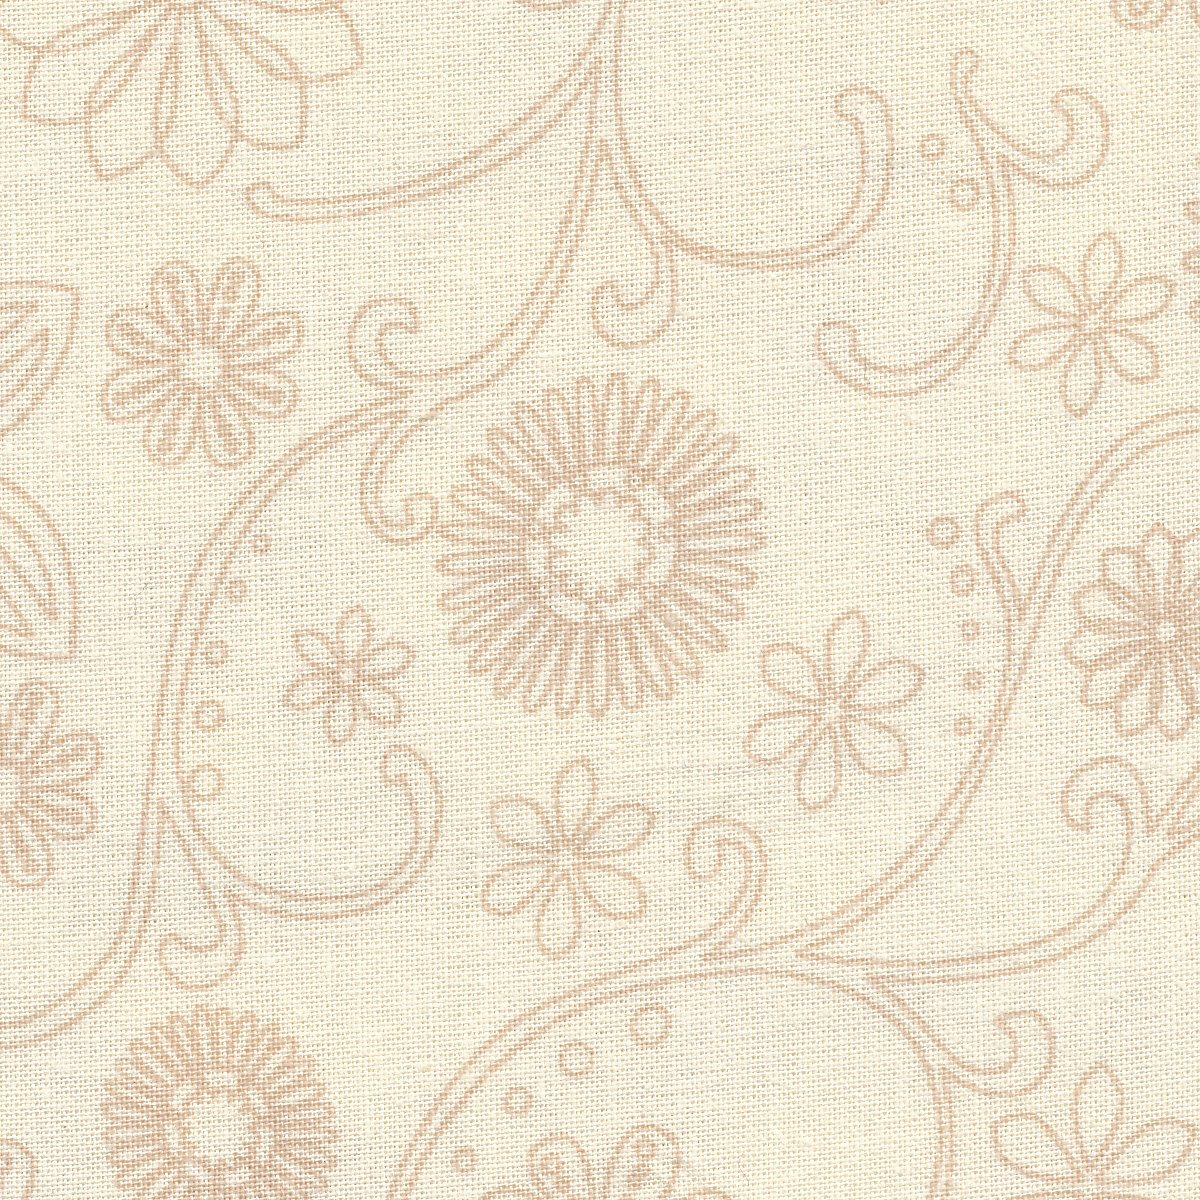 Quilt Backing Cotton 110 Wide - 8048-18